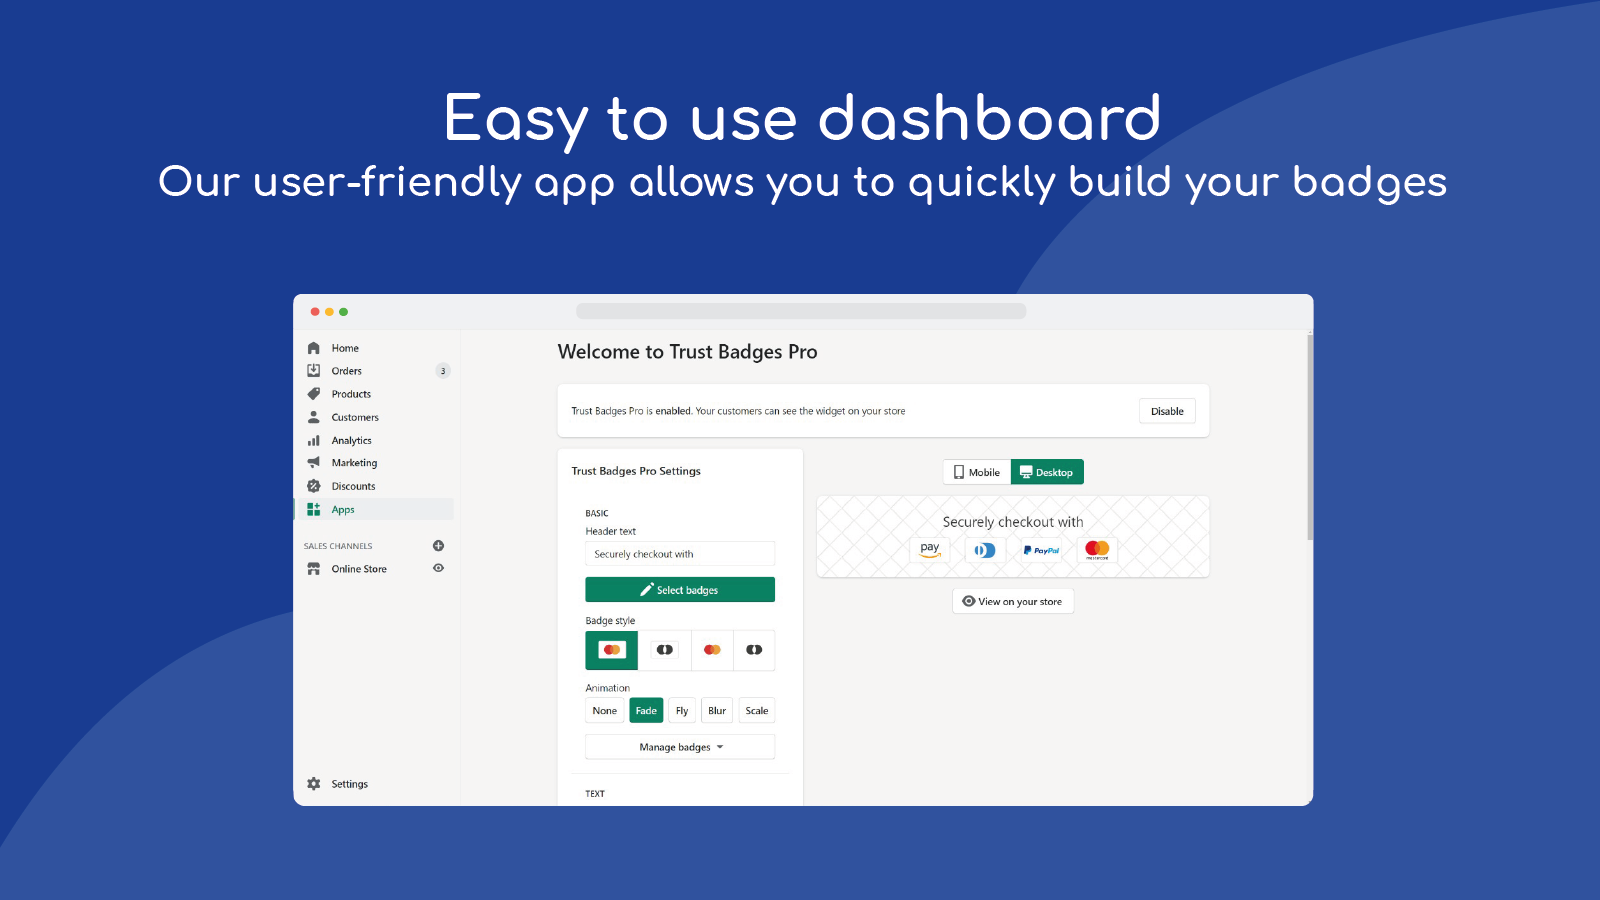 easy to use dashboard to quickly build your badges